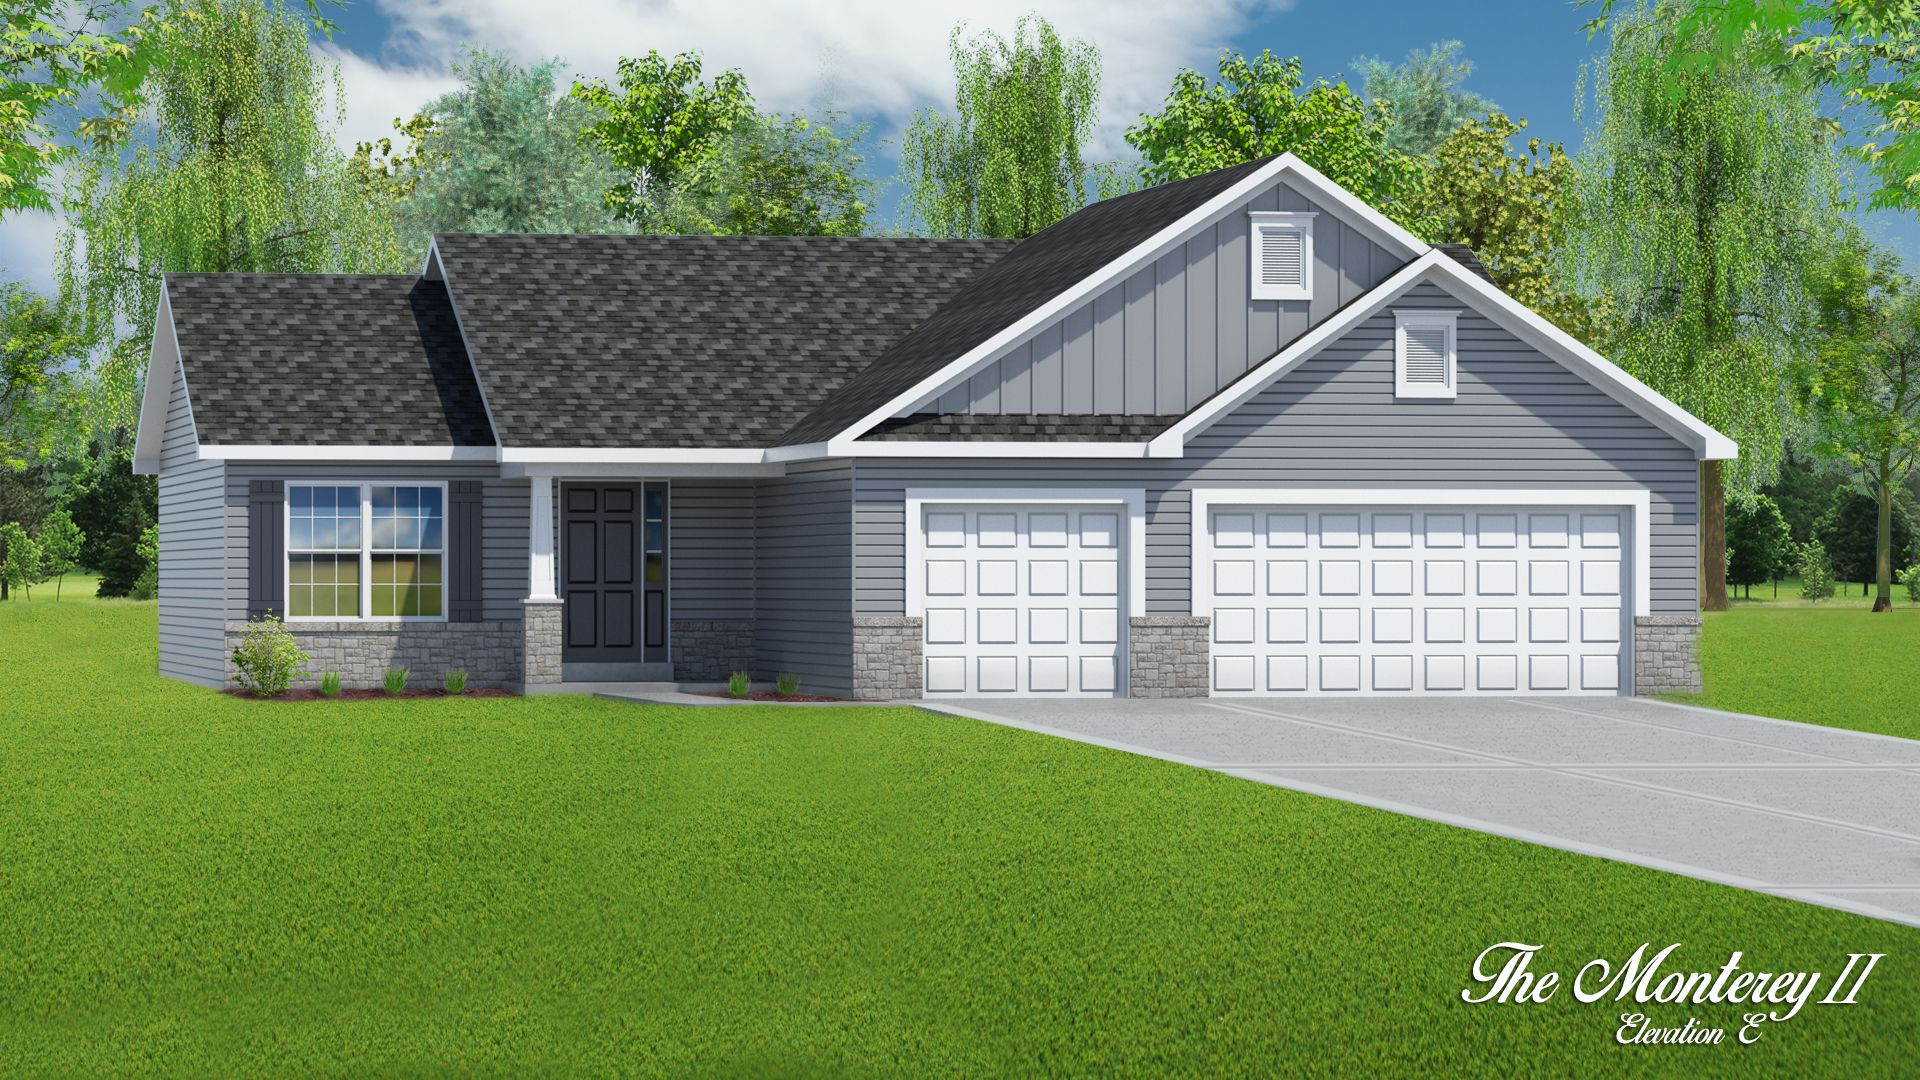 Exterior featured in The Monterey II - 3 Car Garage By T.R. Hughes Homes in St. Louis, MO